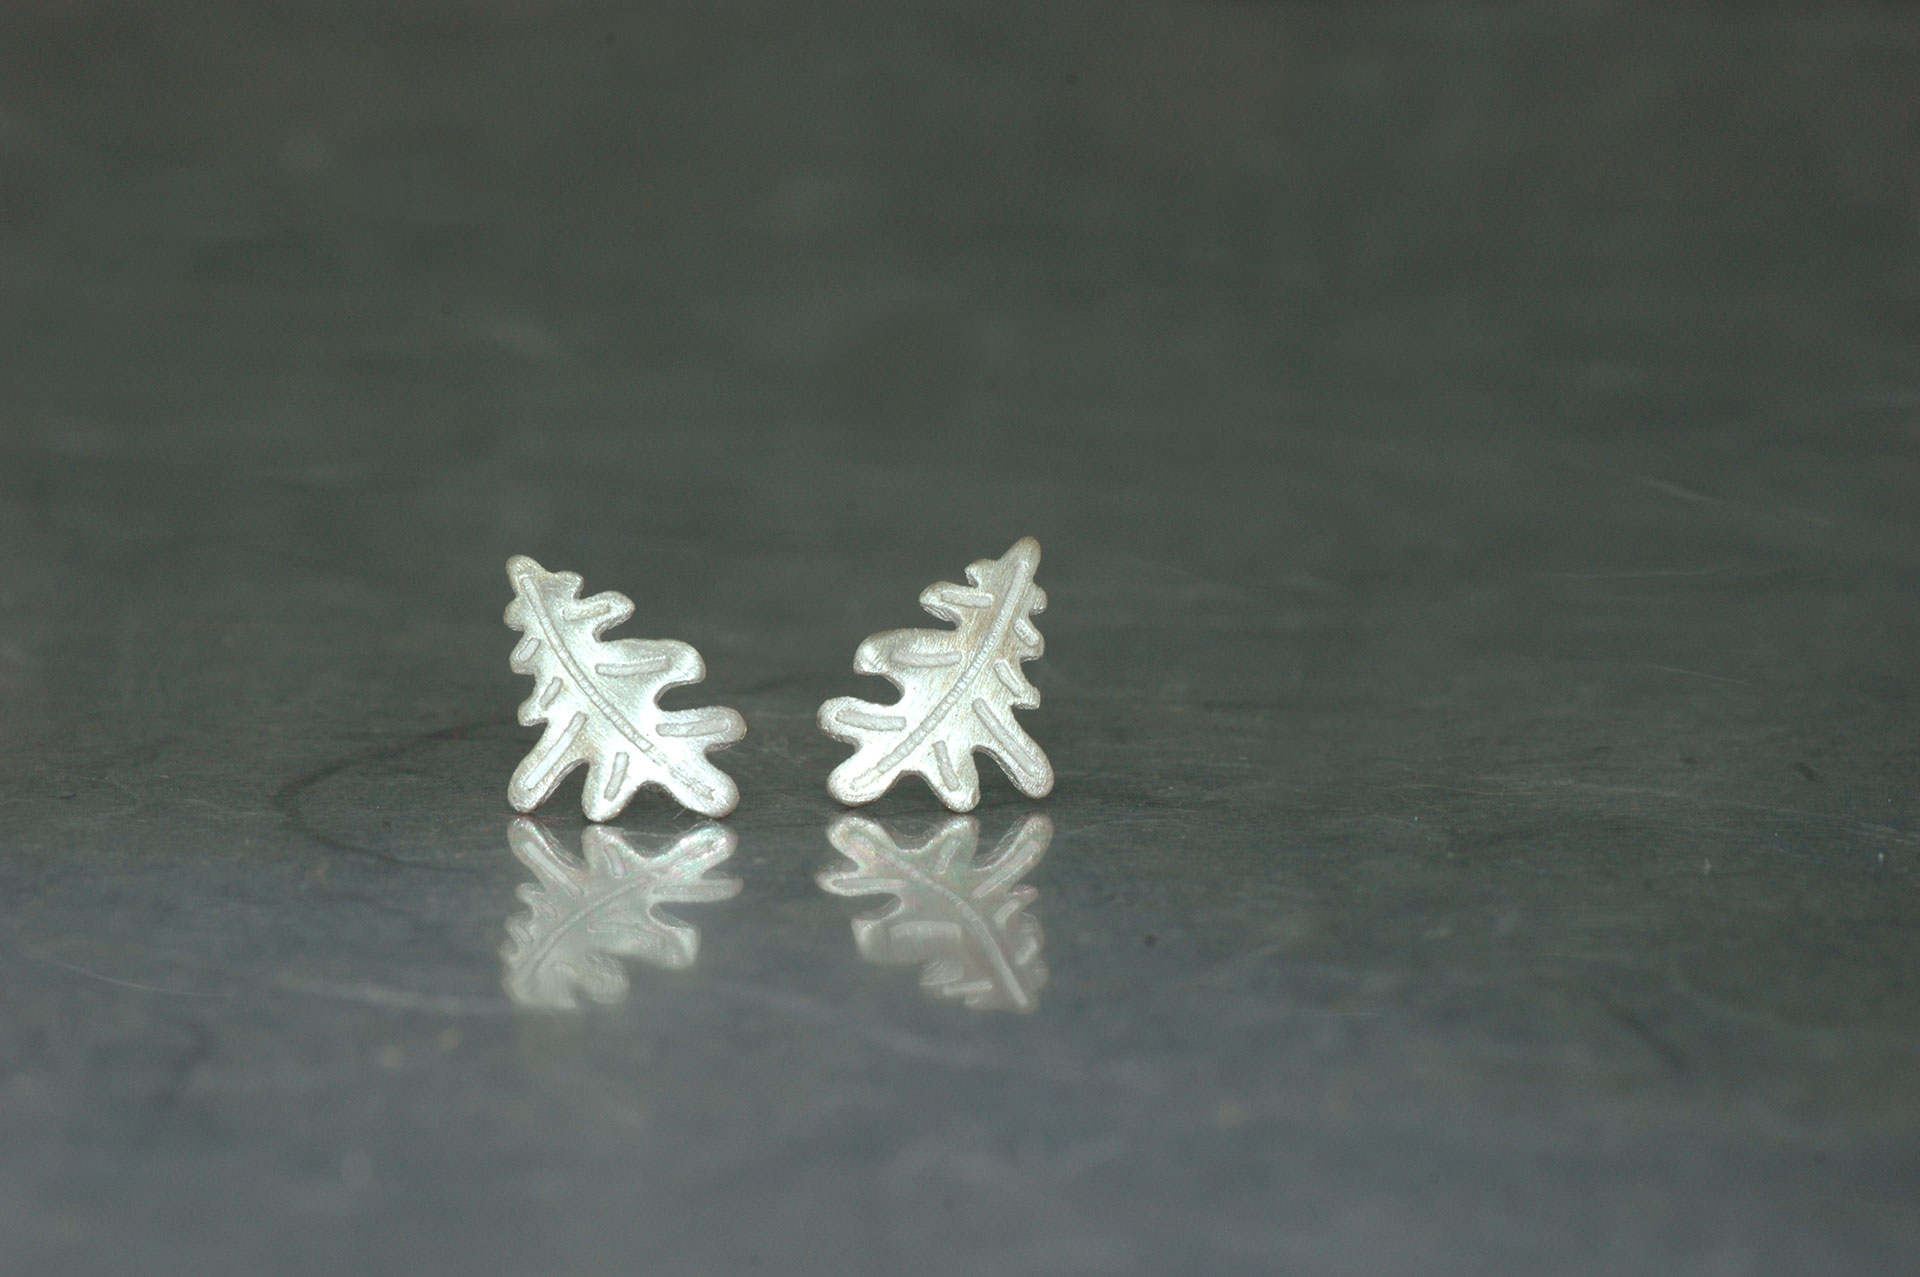 CARBALLO - Stud Earrings PP, with matte finish